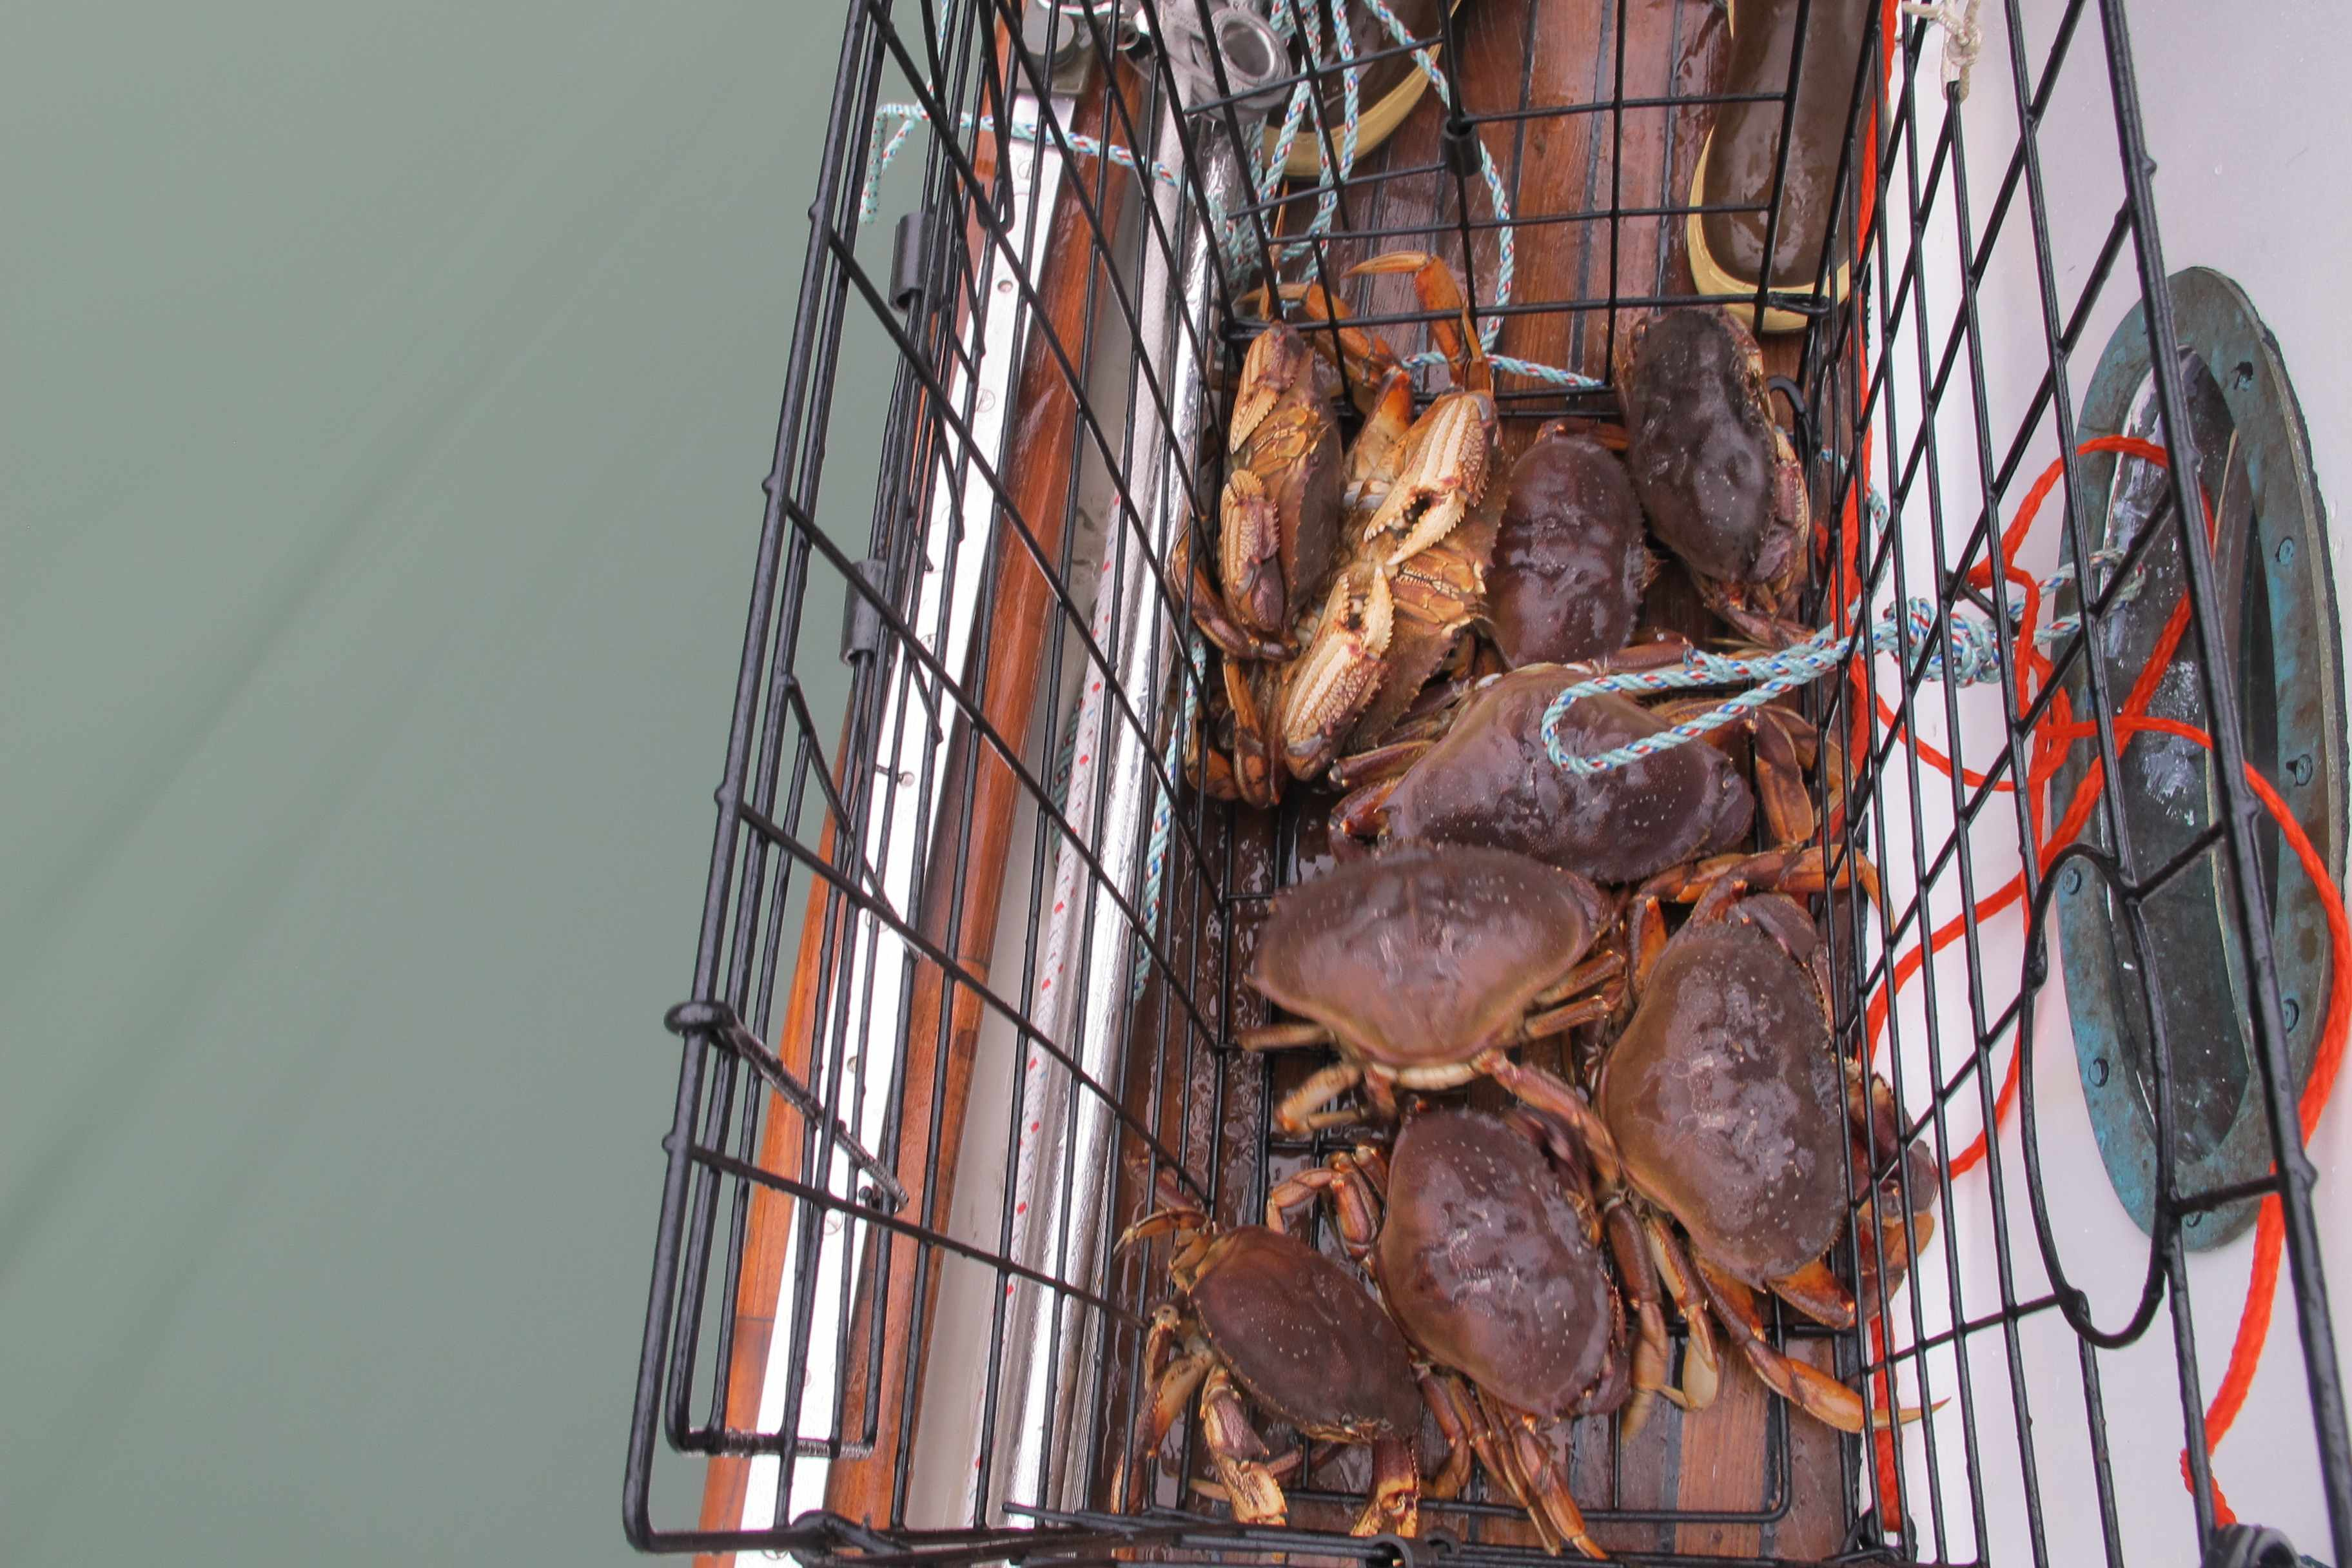 It's not only the fishing that was easy. Dungeness crab feast, again!